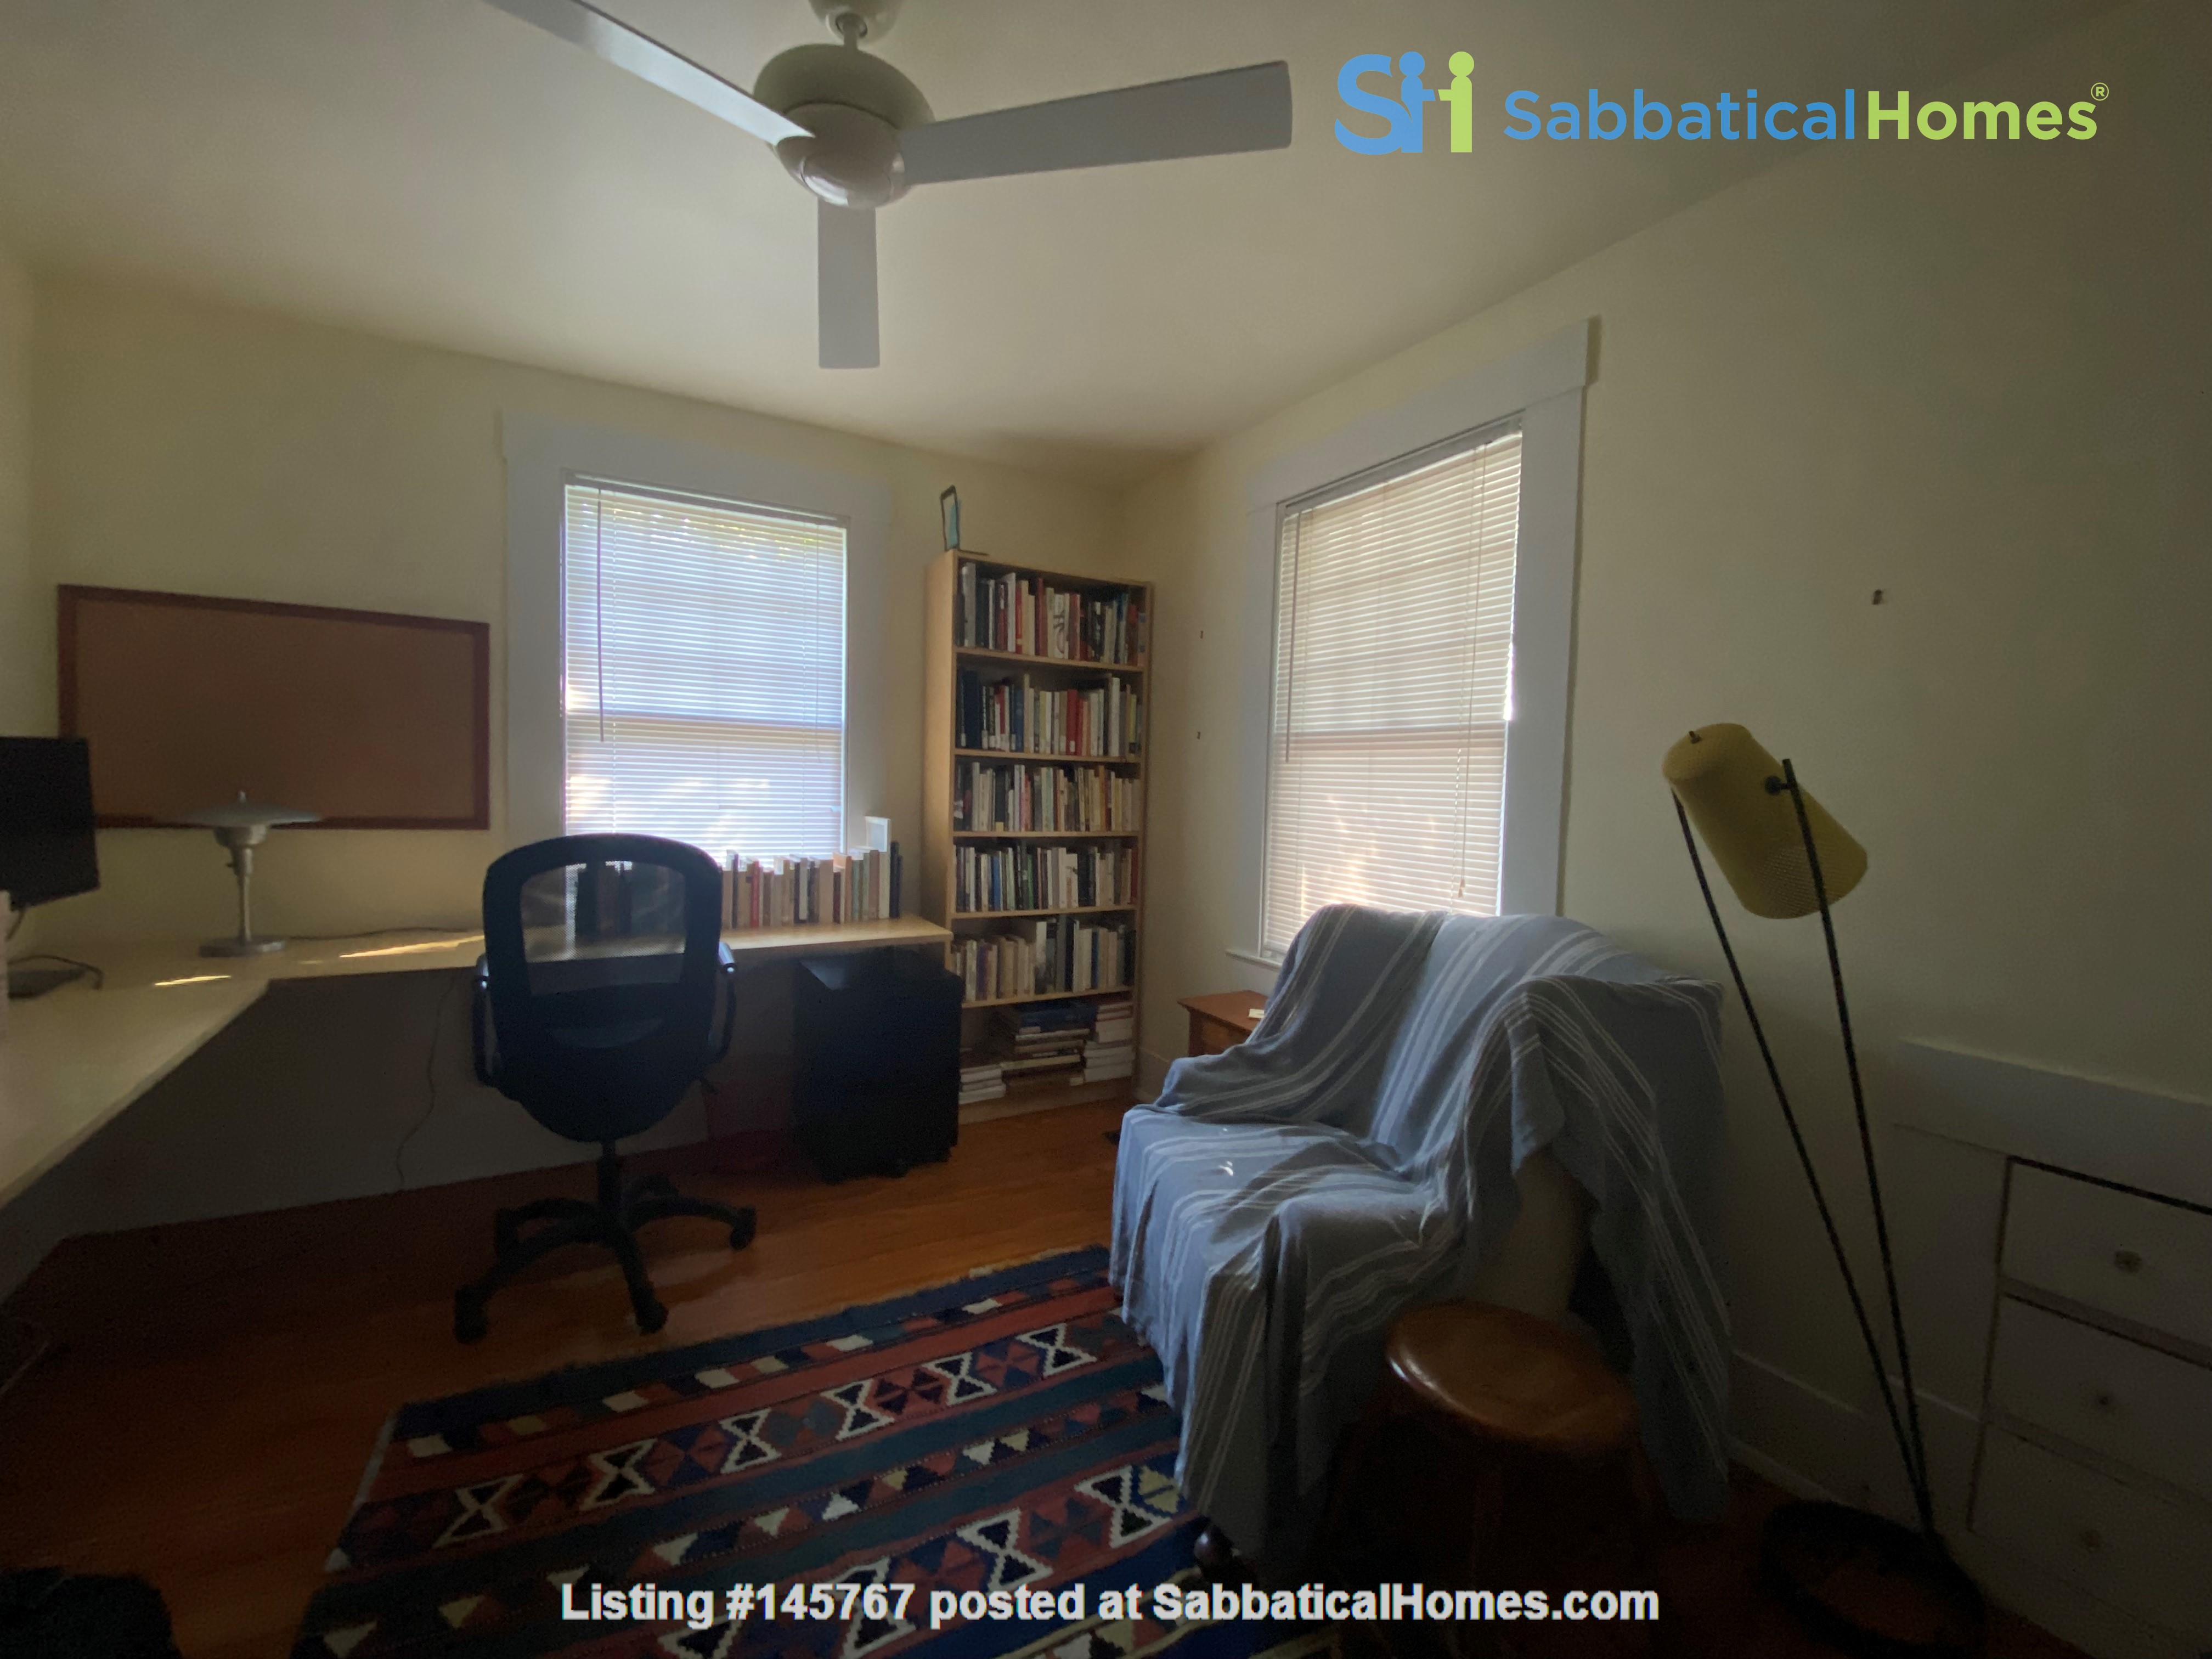 Beautiful 1920s Craftsman House (furnished, home share) Home Rental in Austin 7